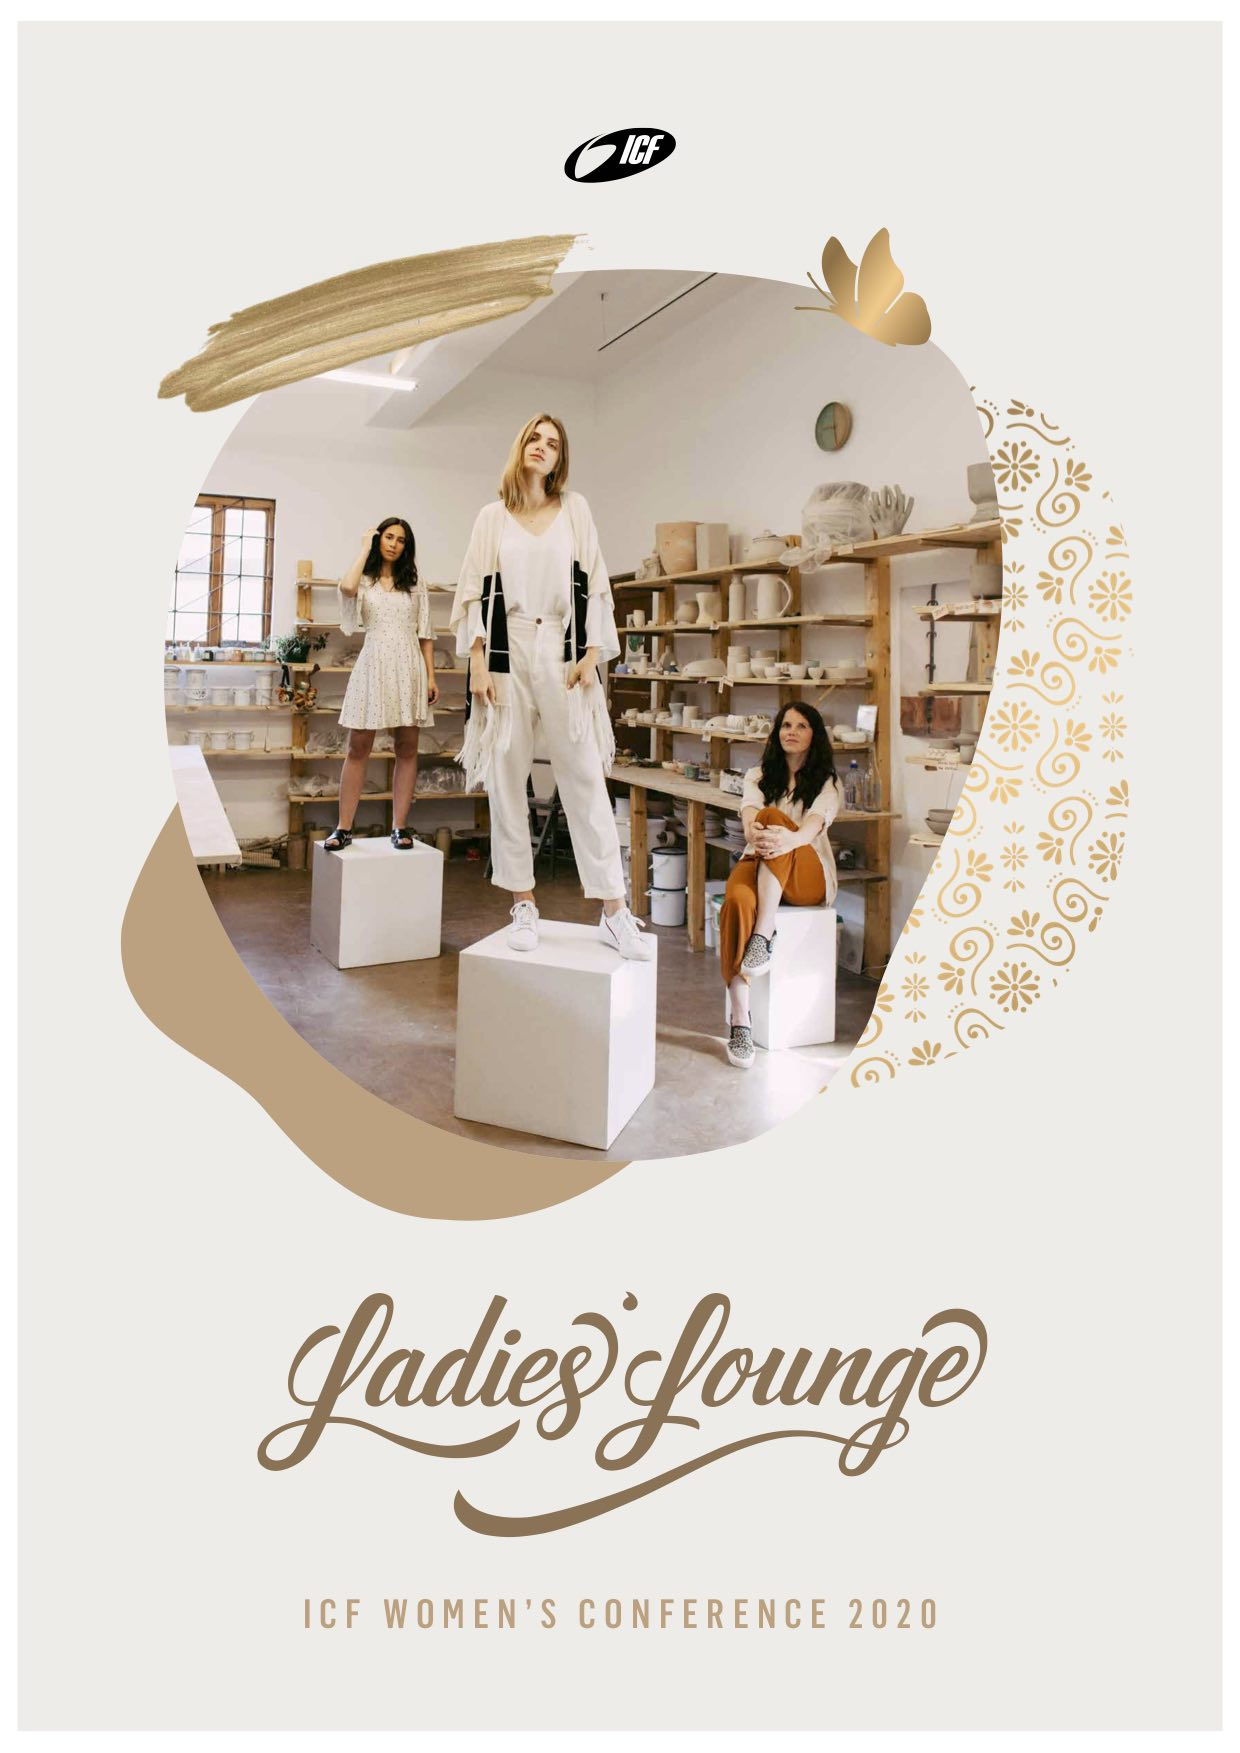 ICF Ladies Lounge 2020/2021